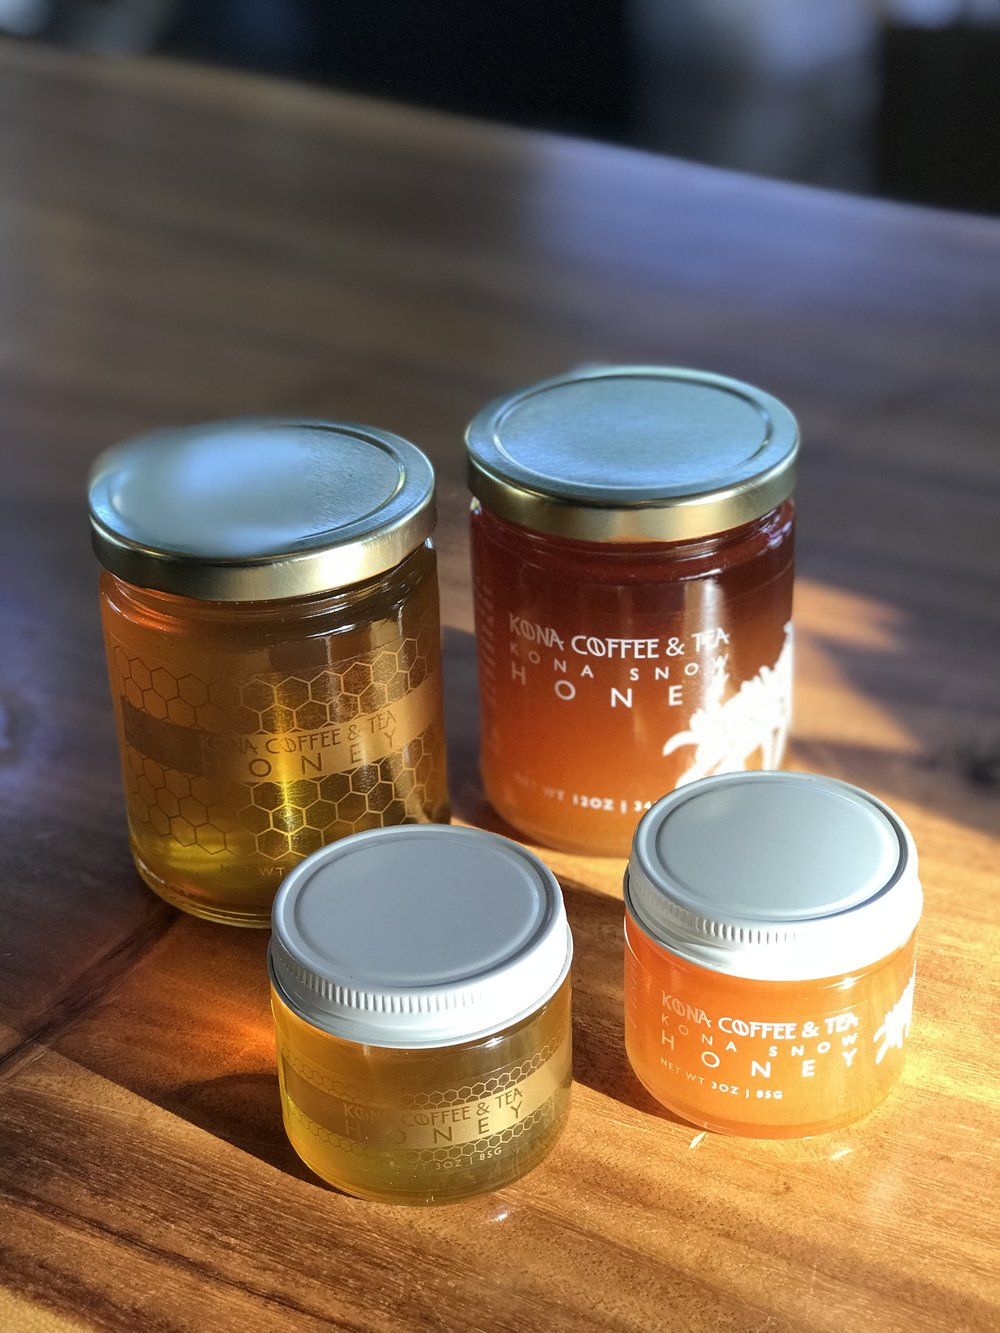 We offer two kinds of honey: a mixed blossom and Kona Snow (only harvested when the Kona coffee flowers are in bloom for a few months a year). PHOTO: Chance Punahele